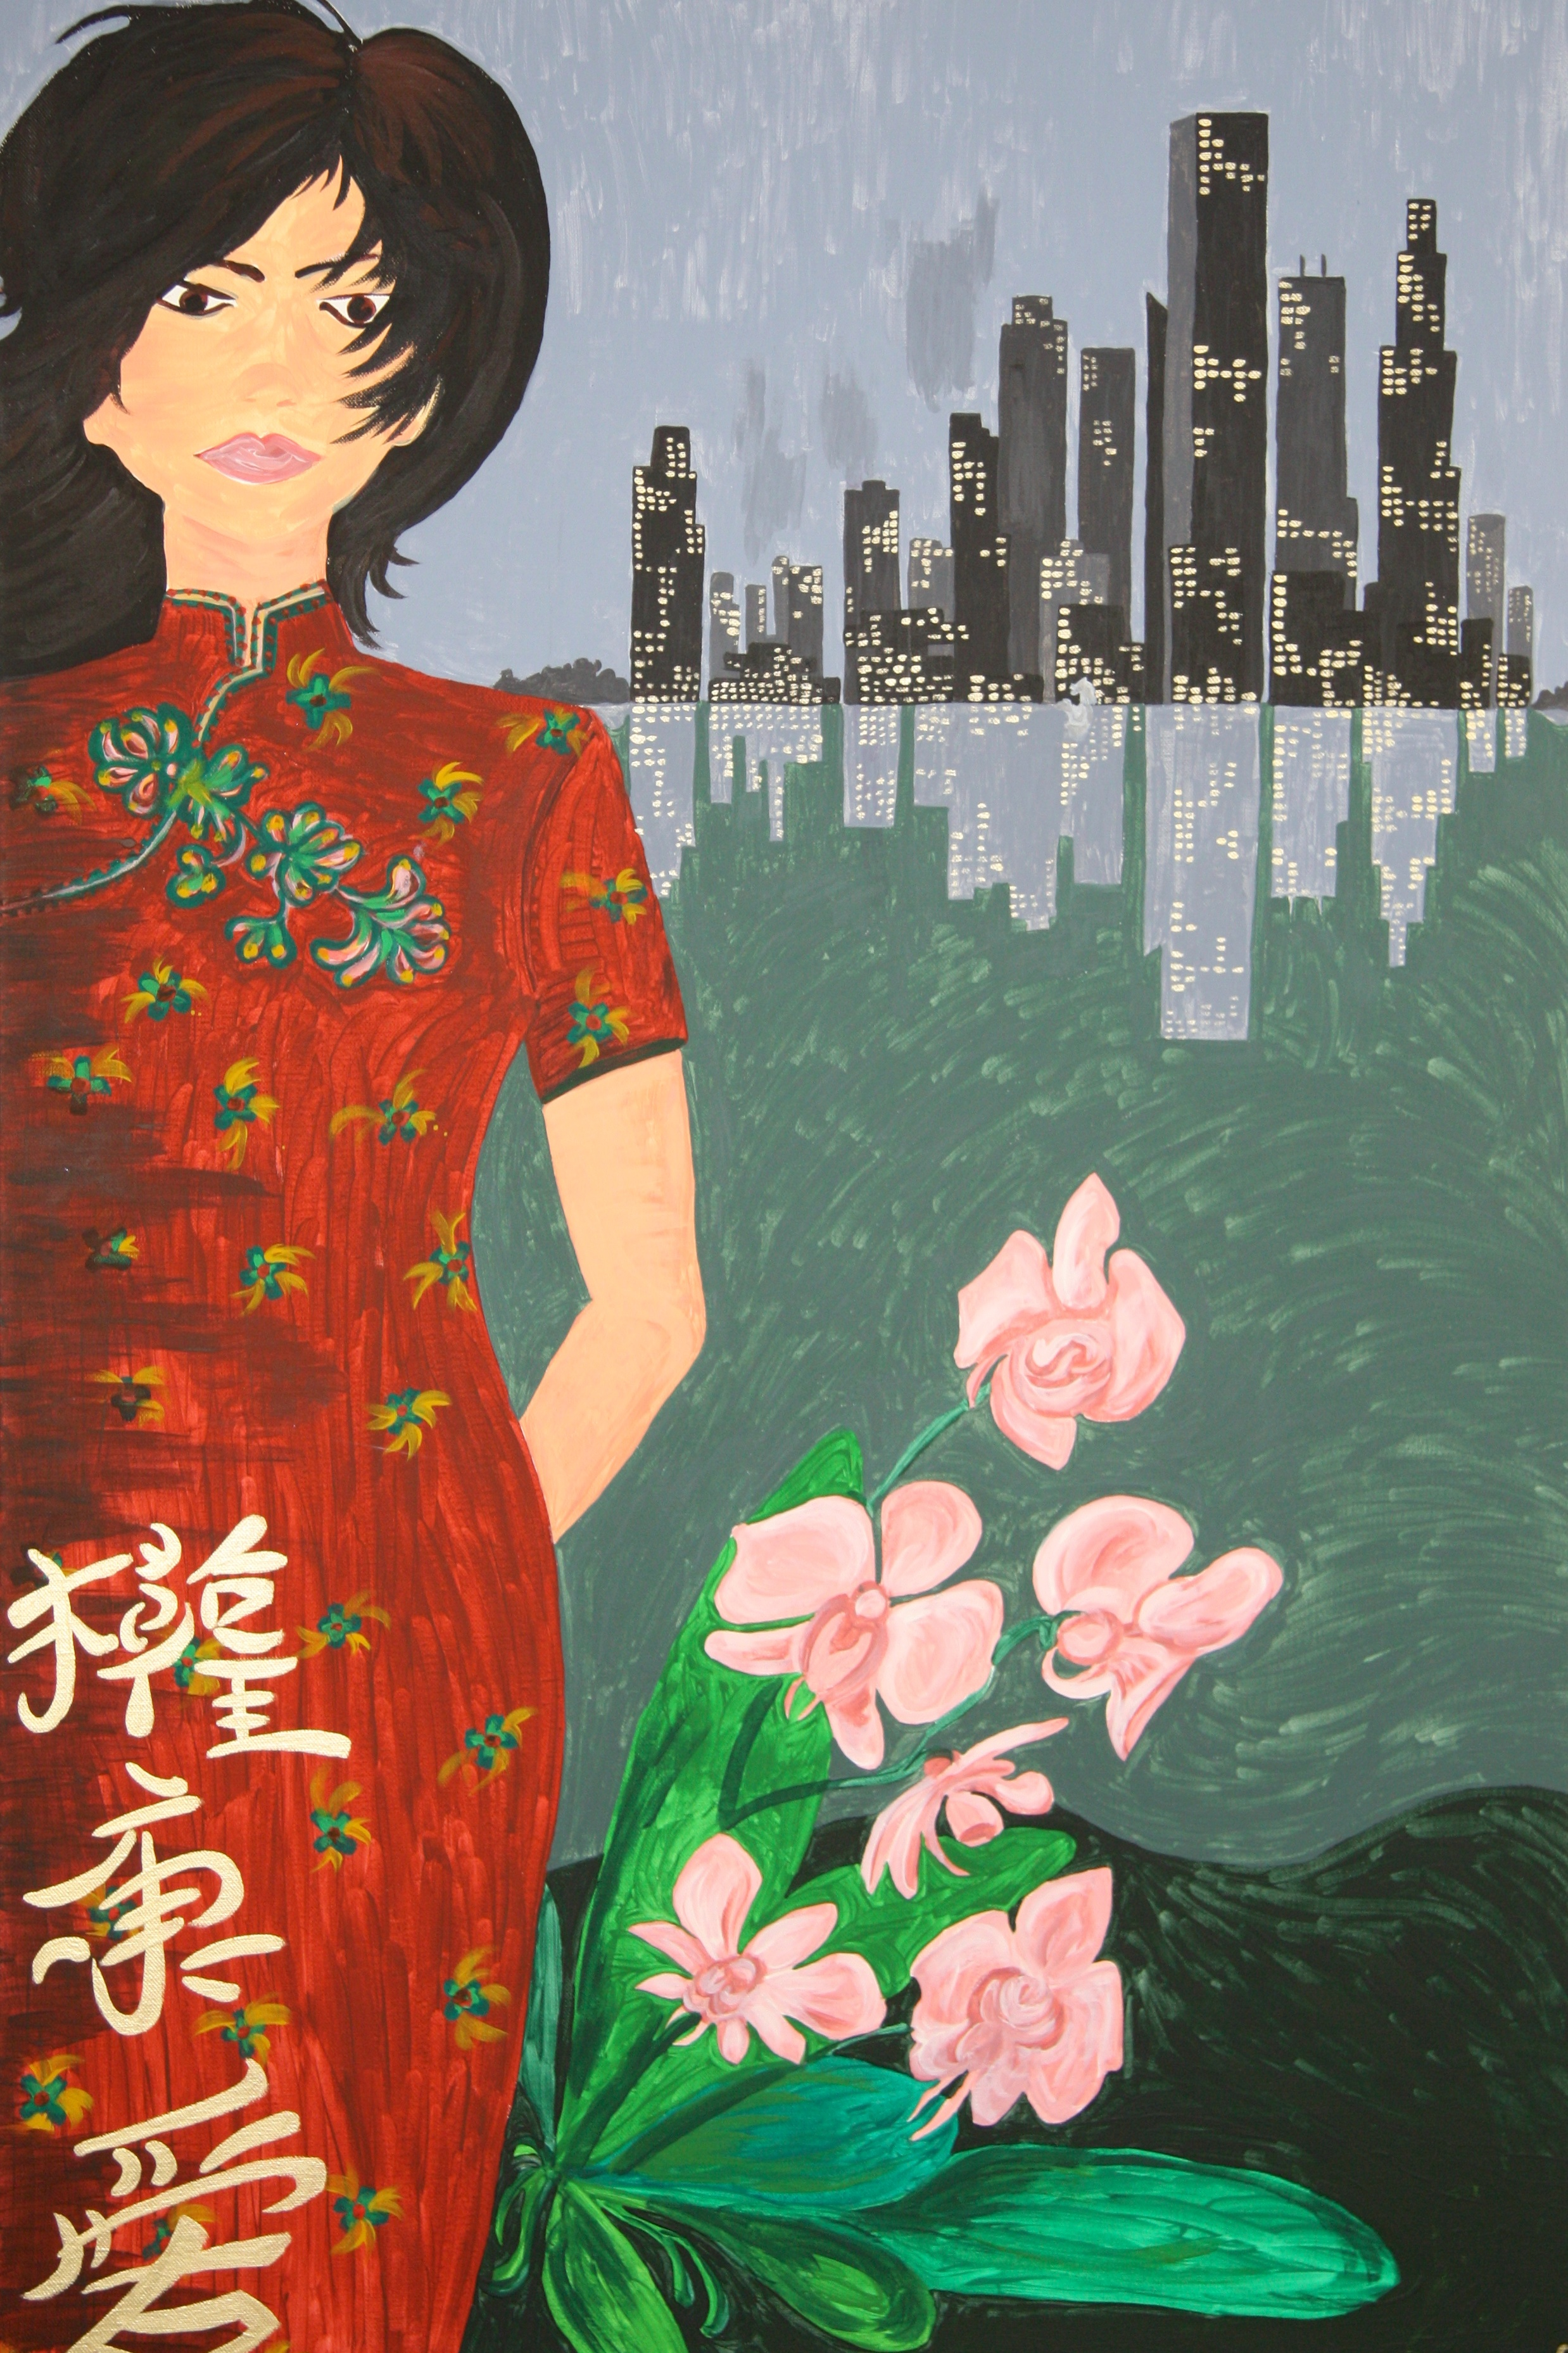 Singapore Girl Painting ize 115x75cm Not avalable